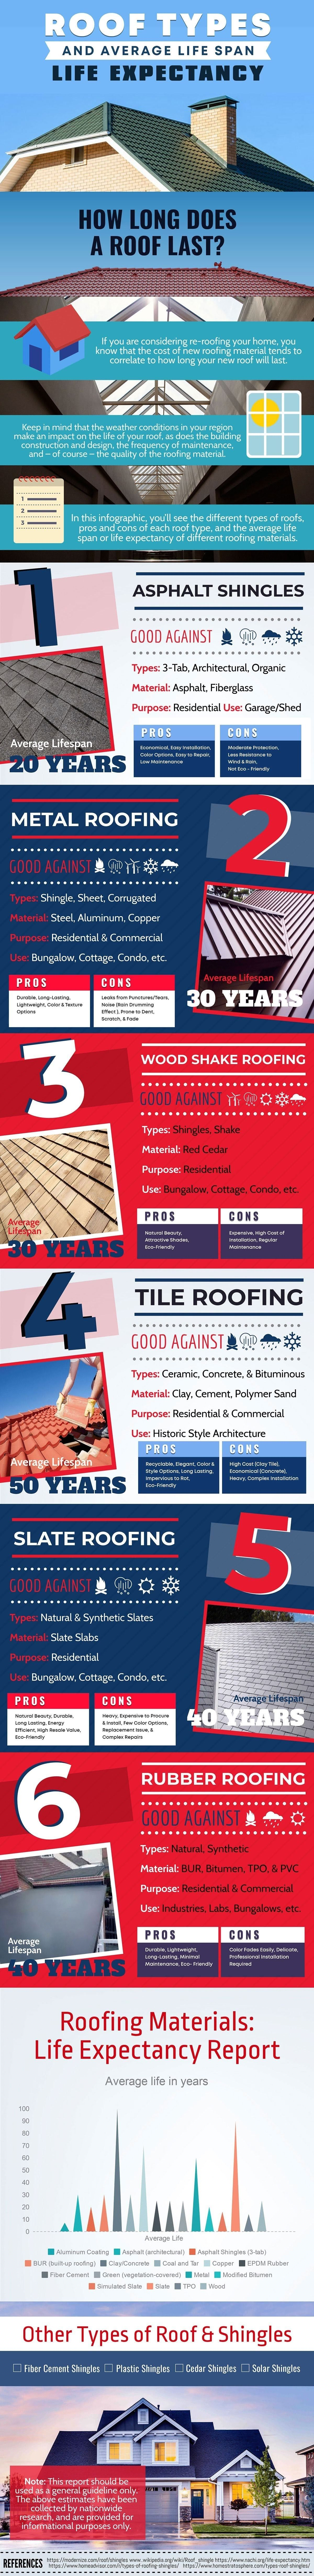 Roof Types Average Life Span Infographic Home Improvement Roof Types Roofing Roof Shingles